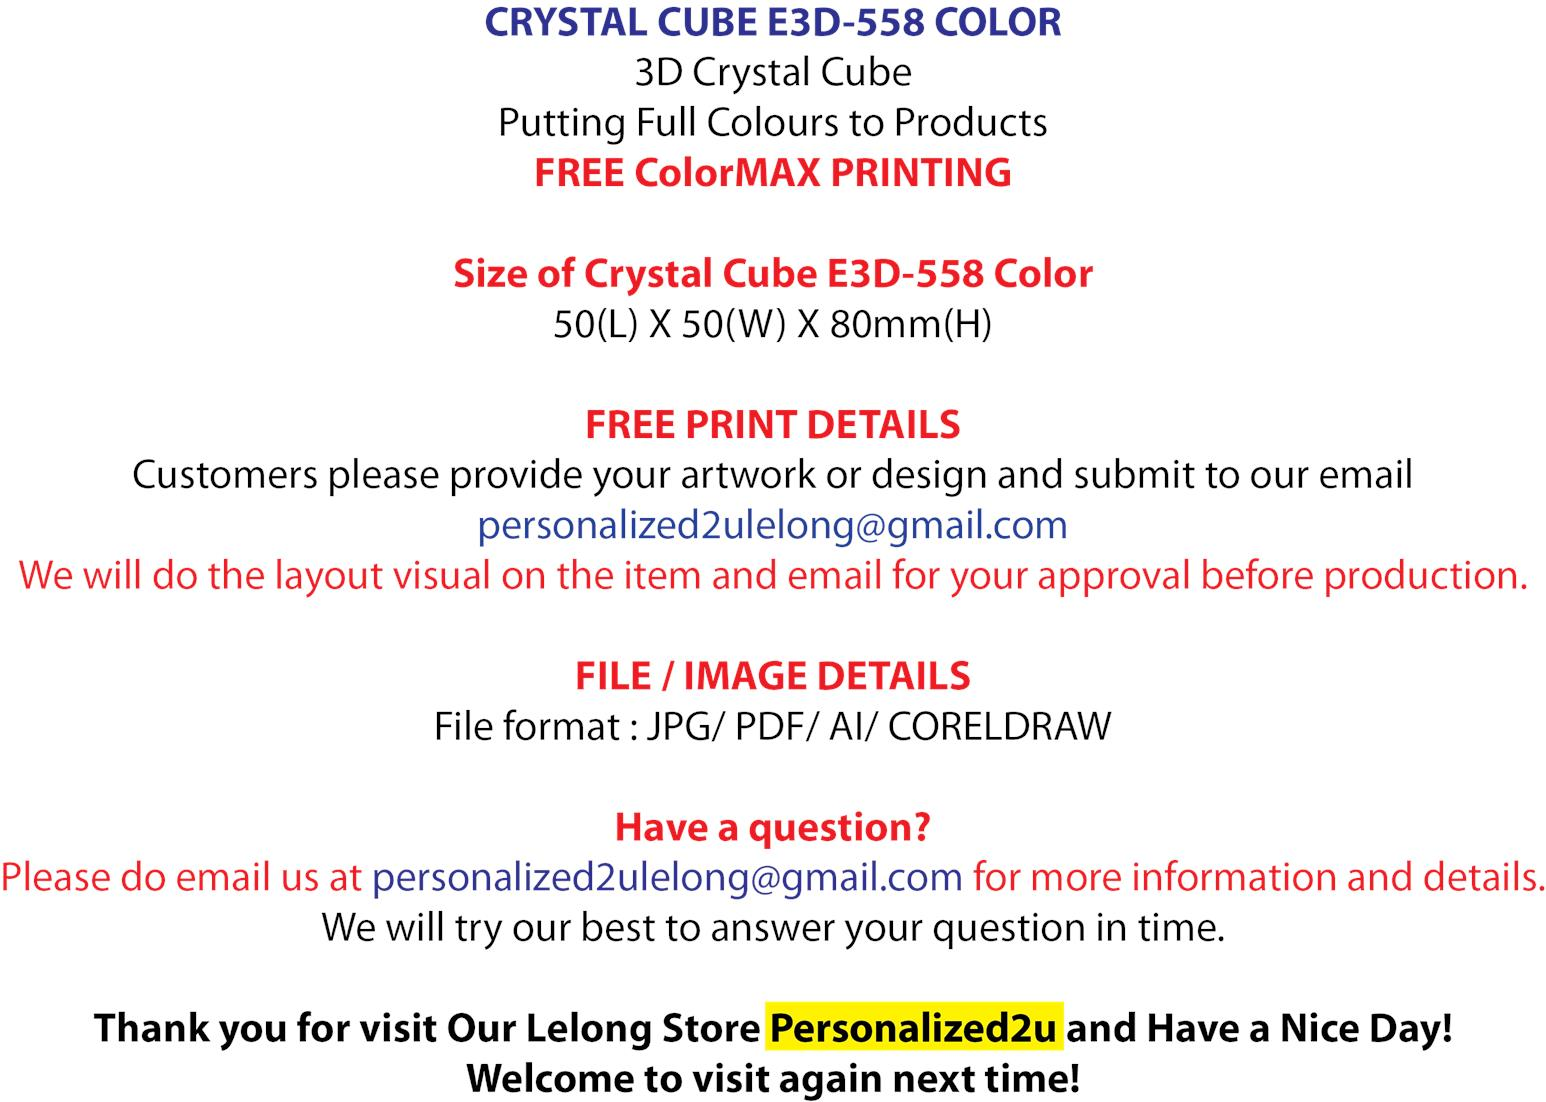 Crystal Cube Color E3D-558